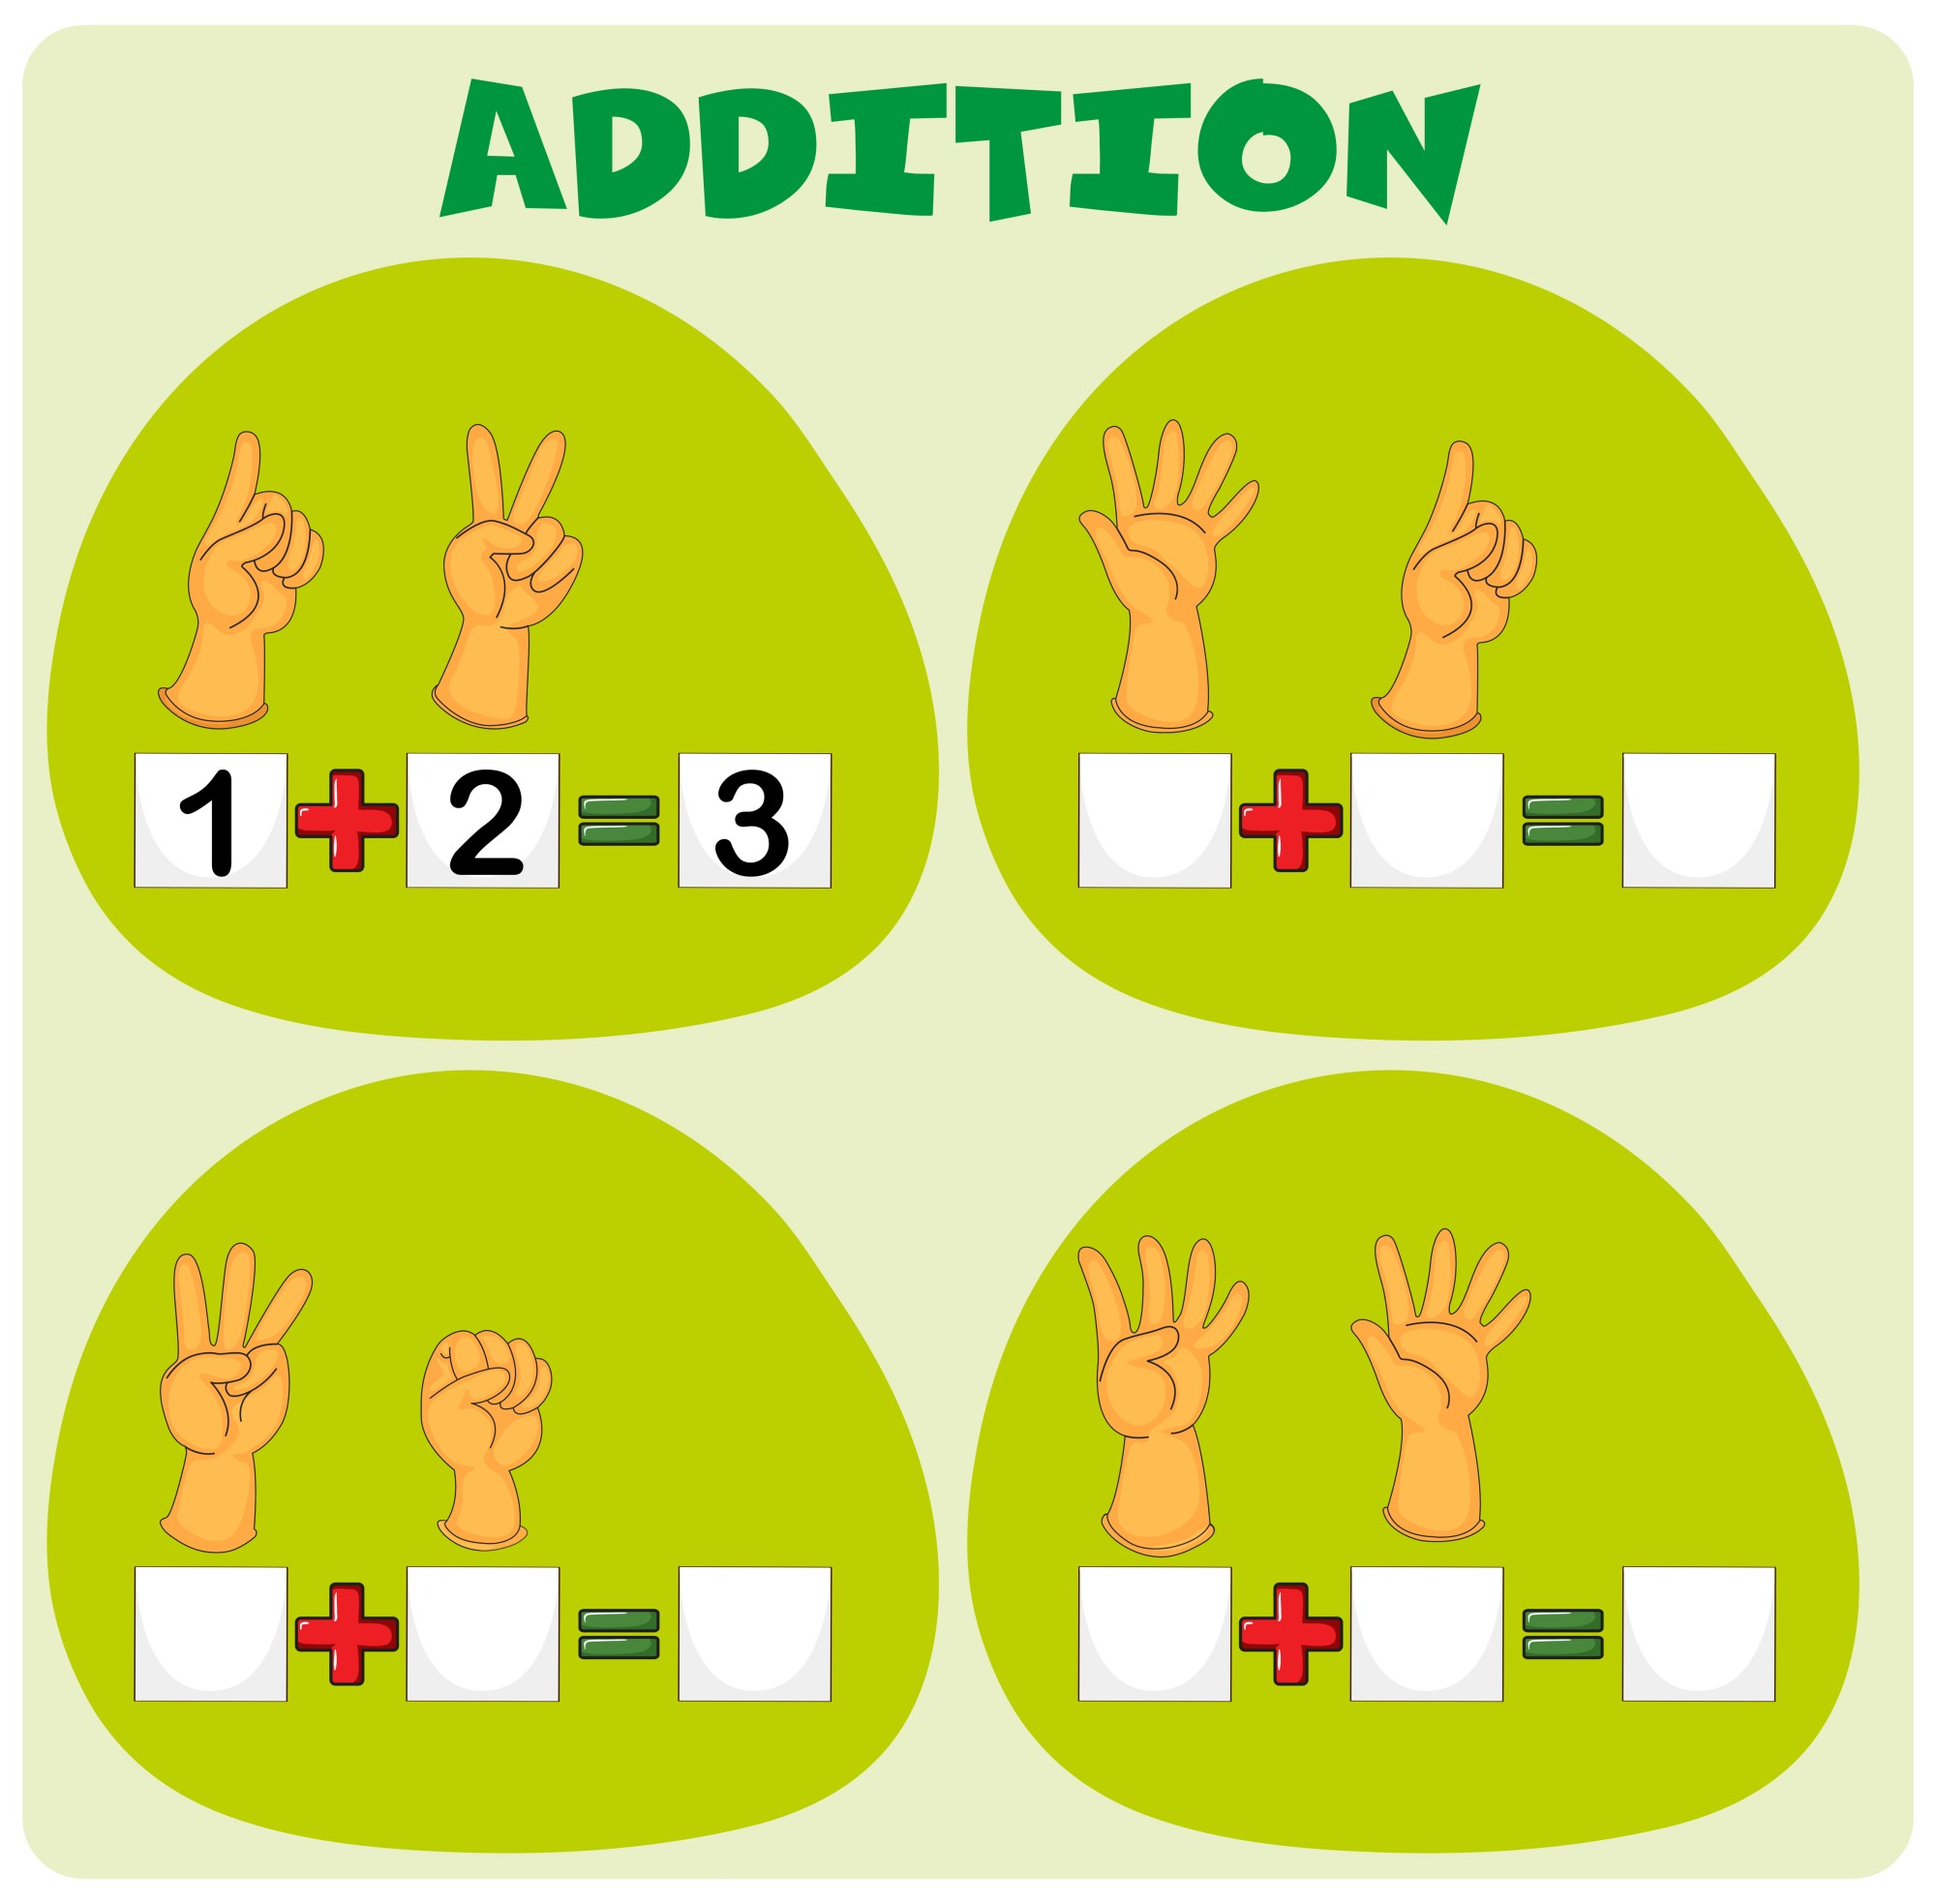 hight resolution of Addition worksheet with hand symbols - Download Free Vectors